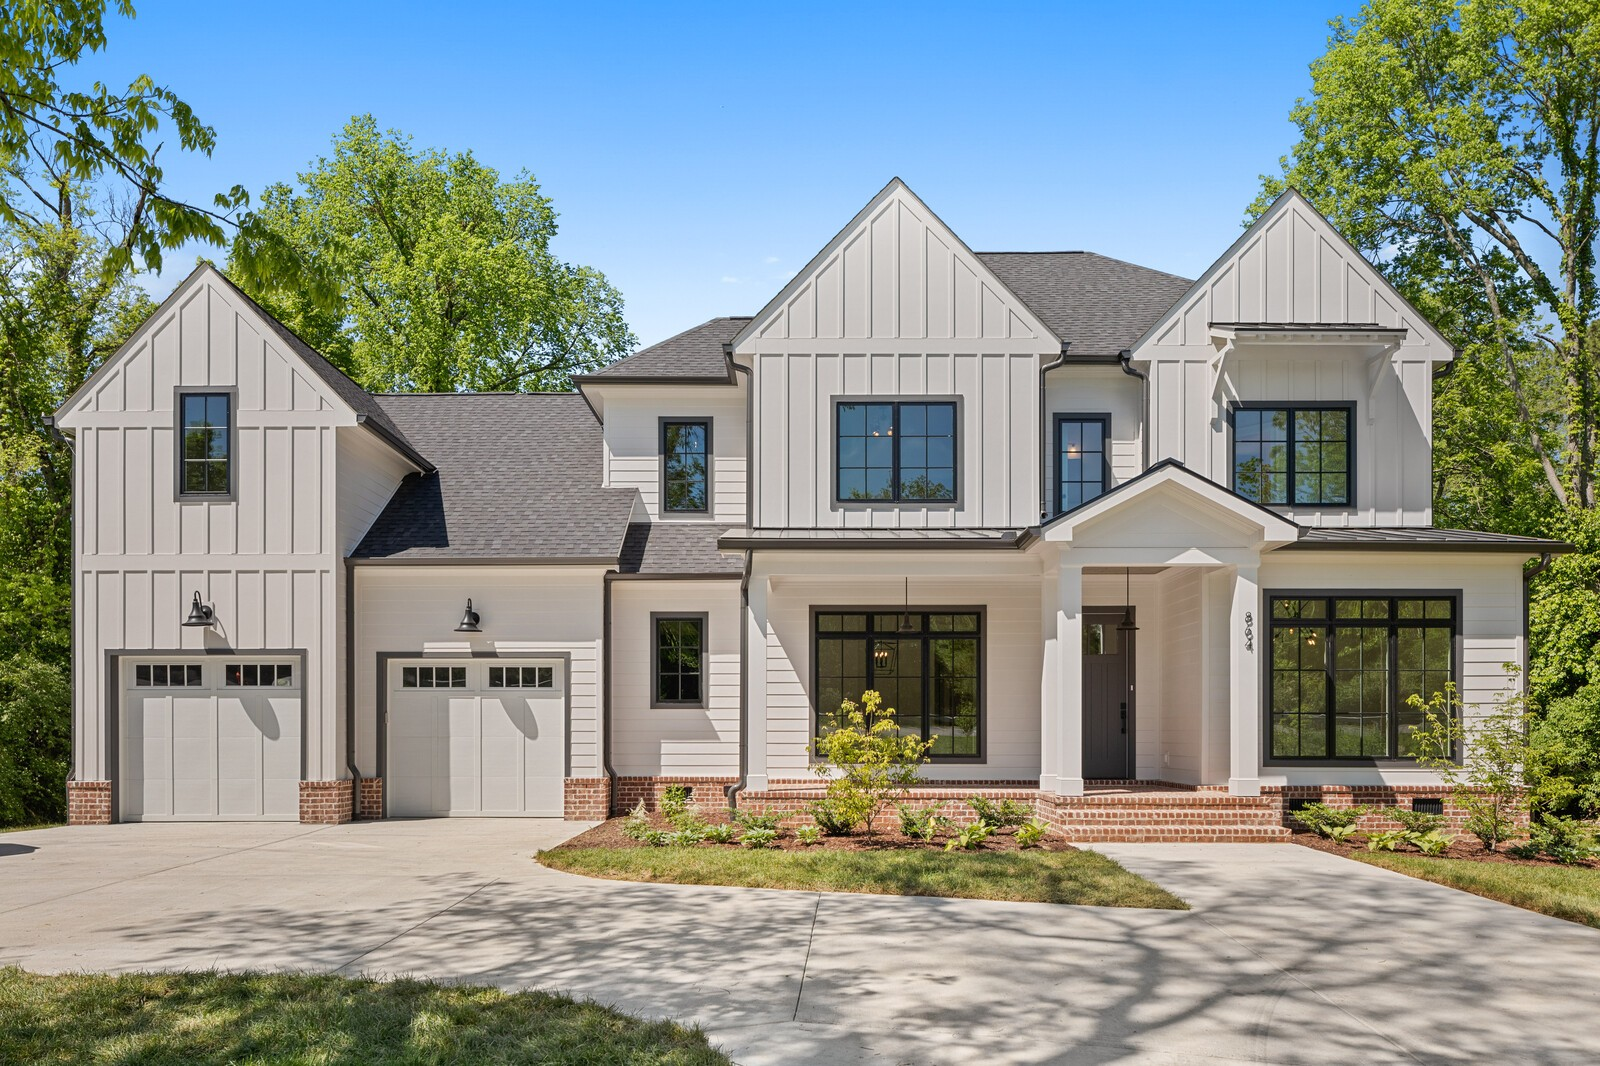 This OAK HILL private estate is nestled on 1.4 acres! Specialty features like 'Western Doors' allow for you to enjoy more OUTDOOR living space as they 'disappear' when opened, Screened Covered deck, second story deck and patios. Pella Windows, Wolf appliances, Custom cabinets and Luxury shower system... Bonus with loft on 2nd floor. Office flex/5th bedroom on main. CONVENIENT location. Call Now view this lovely home built by Blvd. THE Premier Design and Build co. GREAT location.